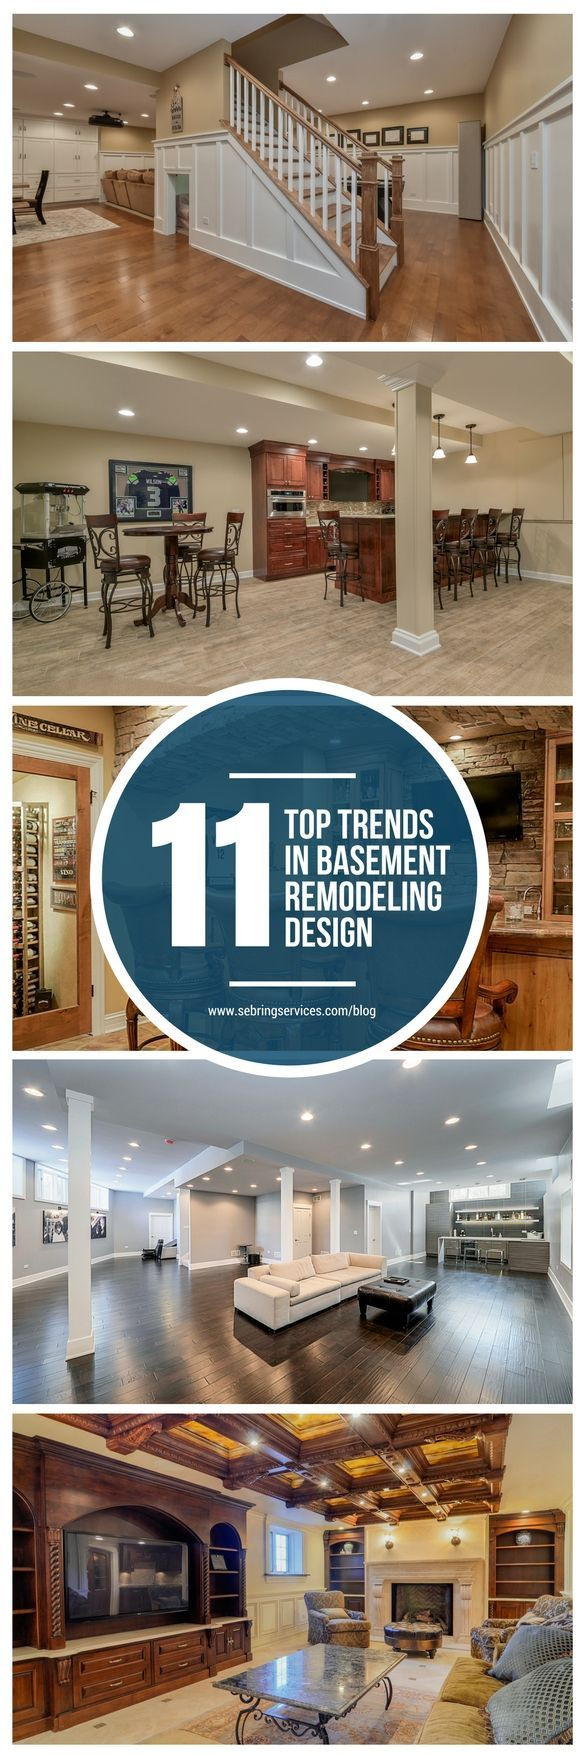 las hardwood flooring elmhurst of 843 best new house basement images on pinterest intended for home improvement basics for anyone to get the home of your dreams